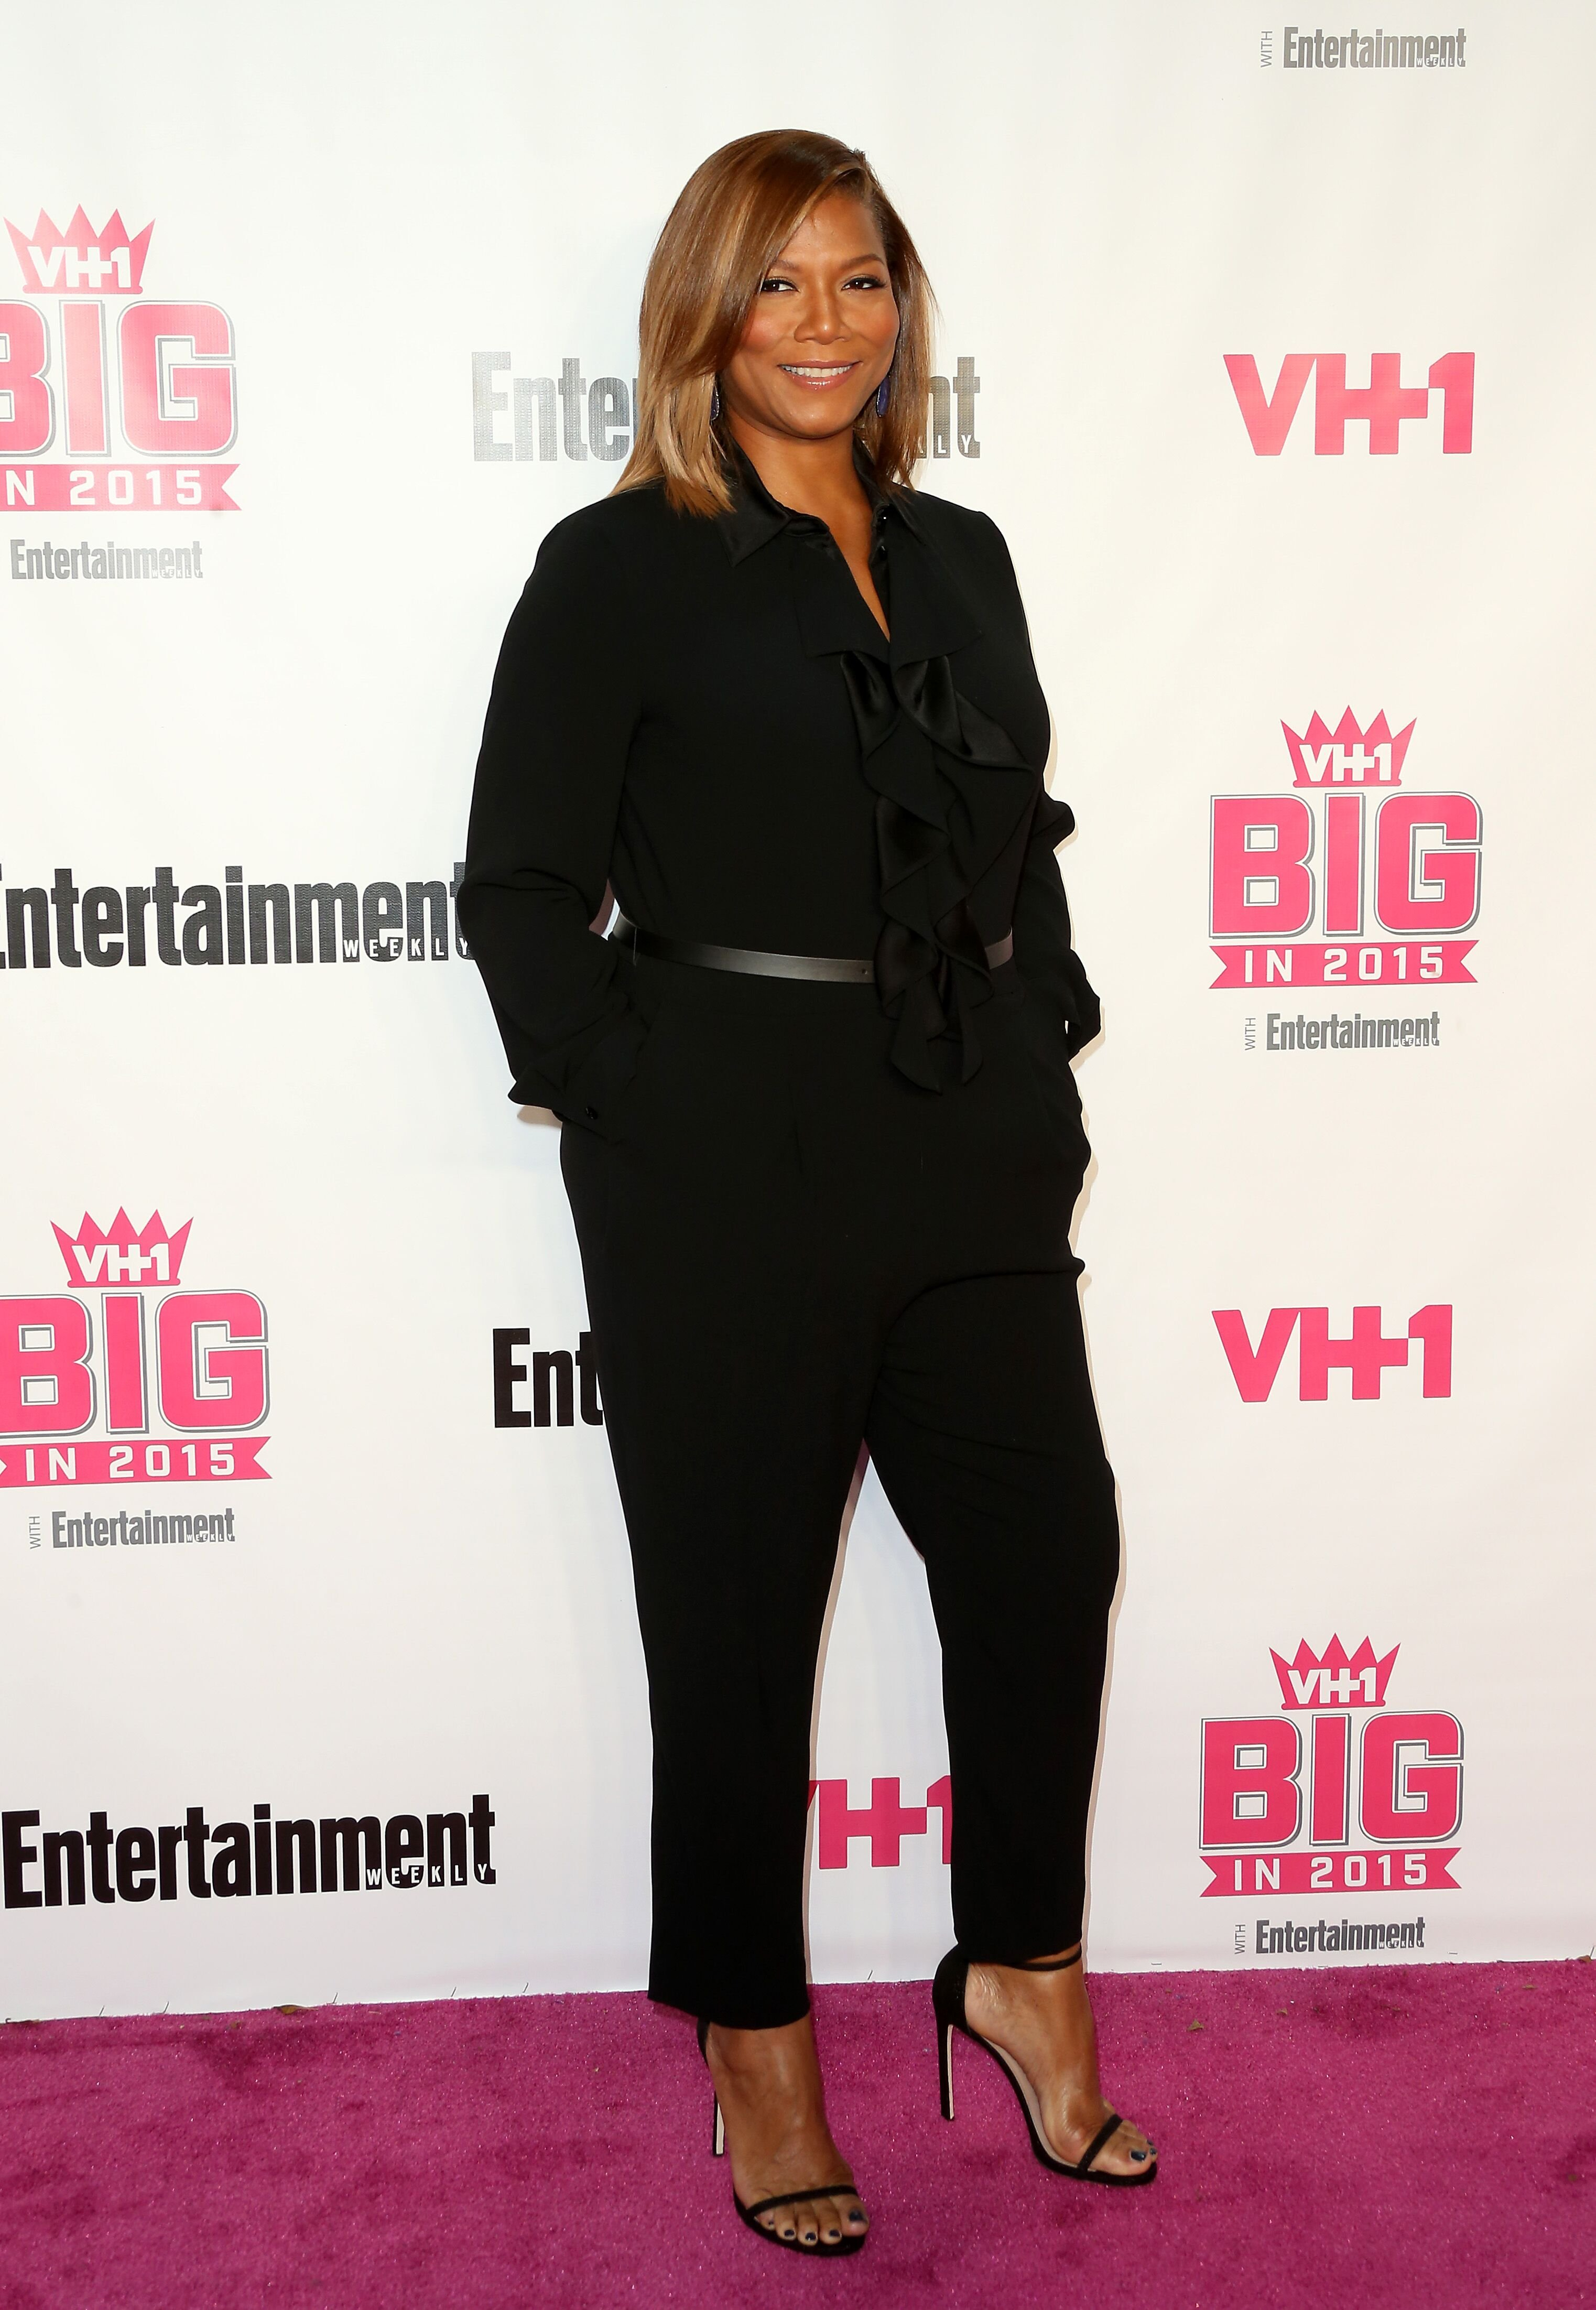 """Actress Queen Latifah at the """"VH1 Big In 2015 With Entertainment Weekly Awards"""" in November 2015. 